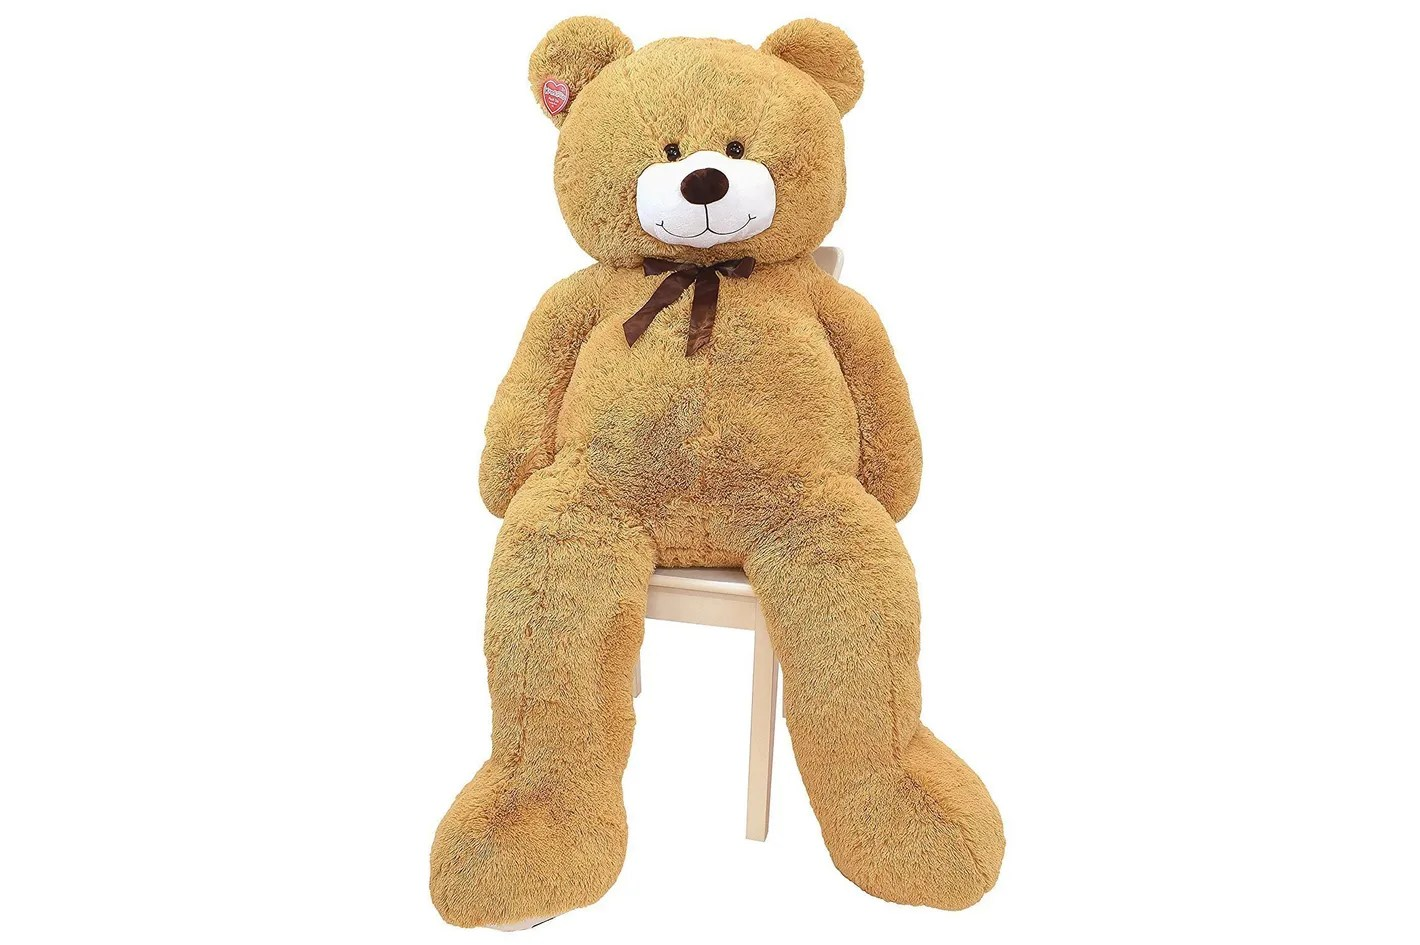 12 Giant Teddy Bears To Shop For Valentines Day 2018